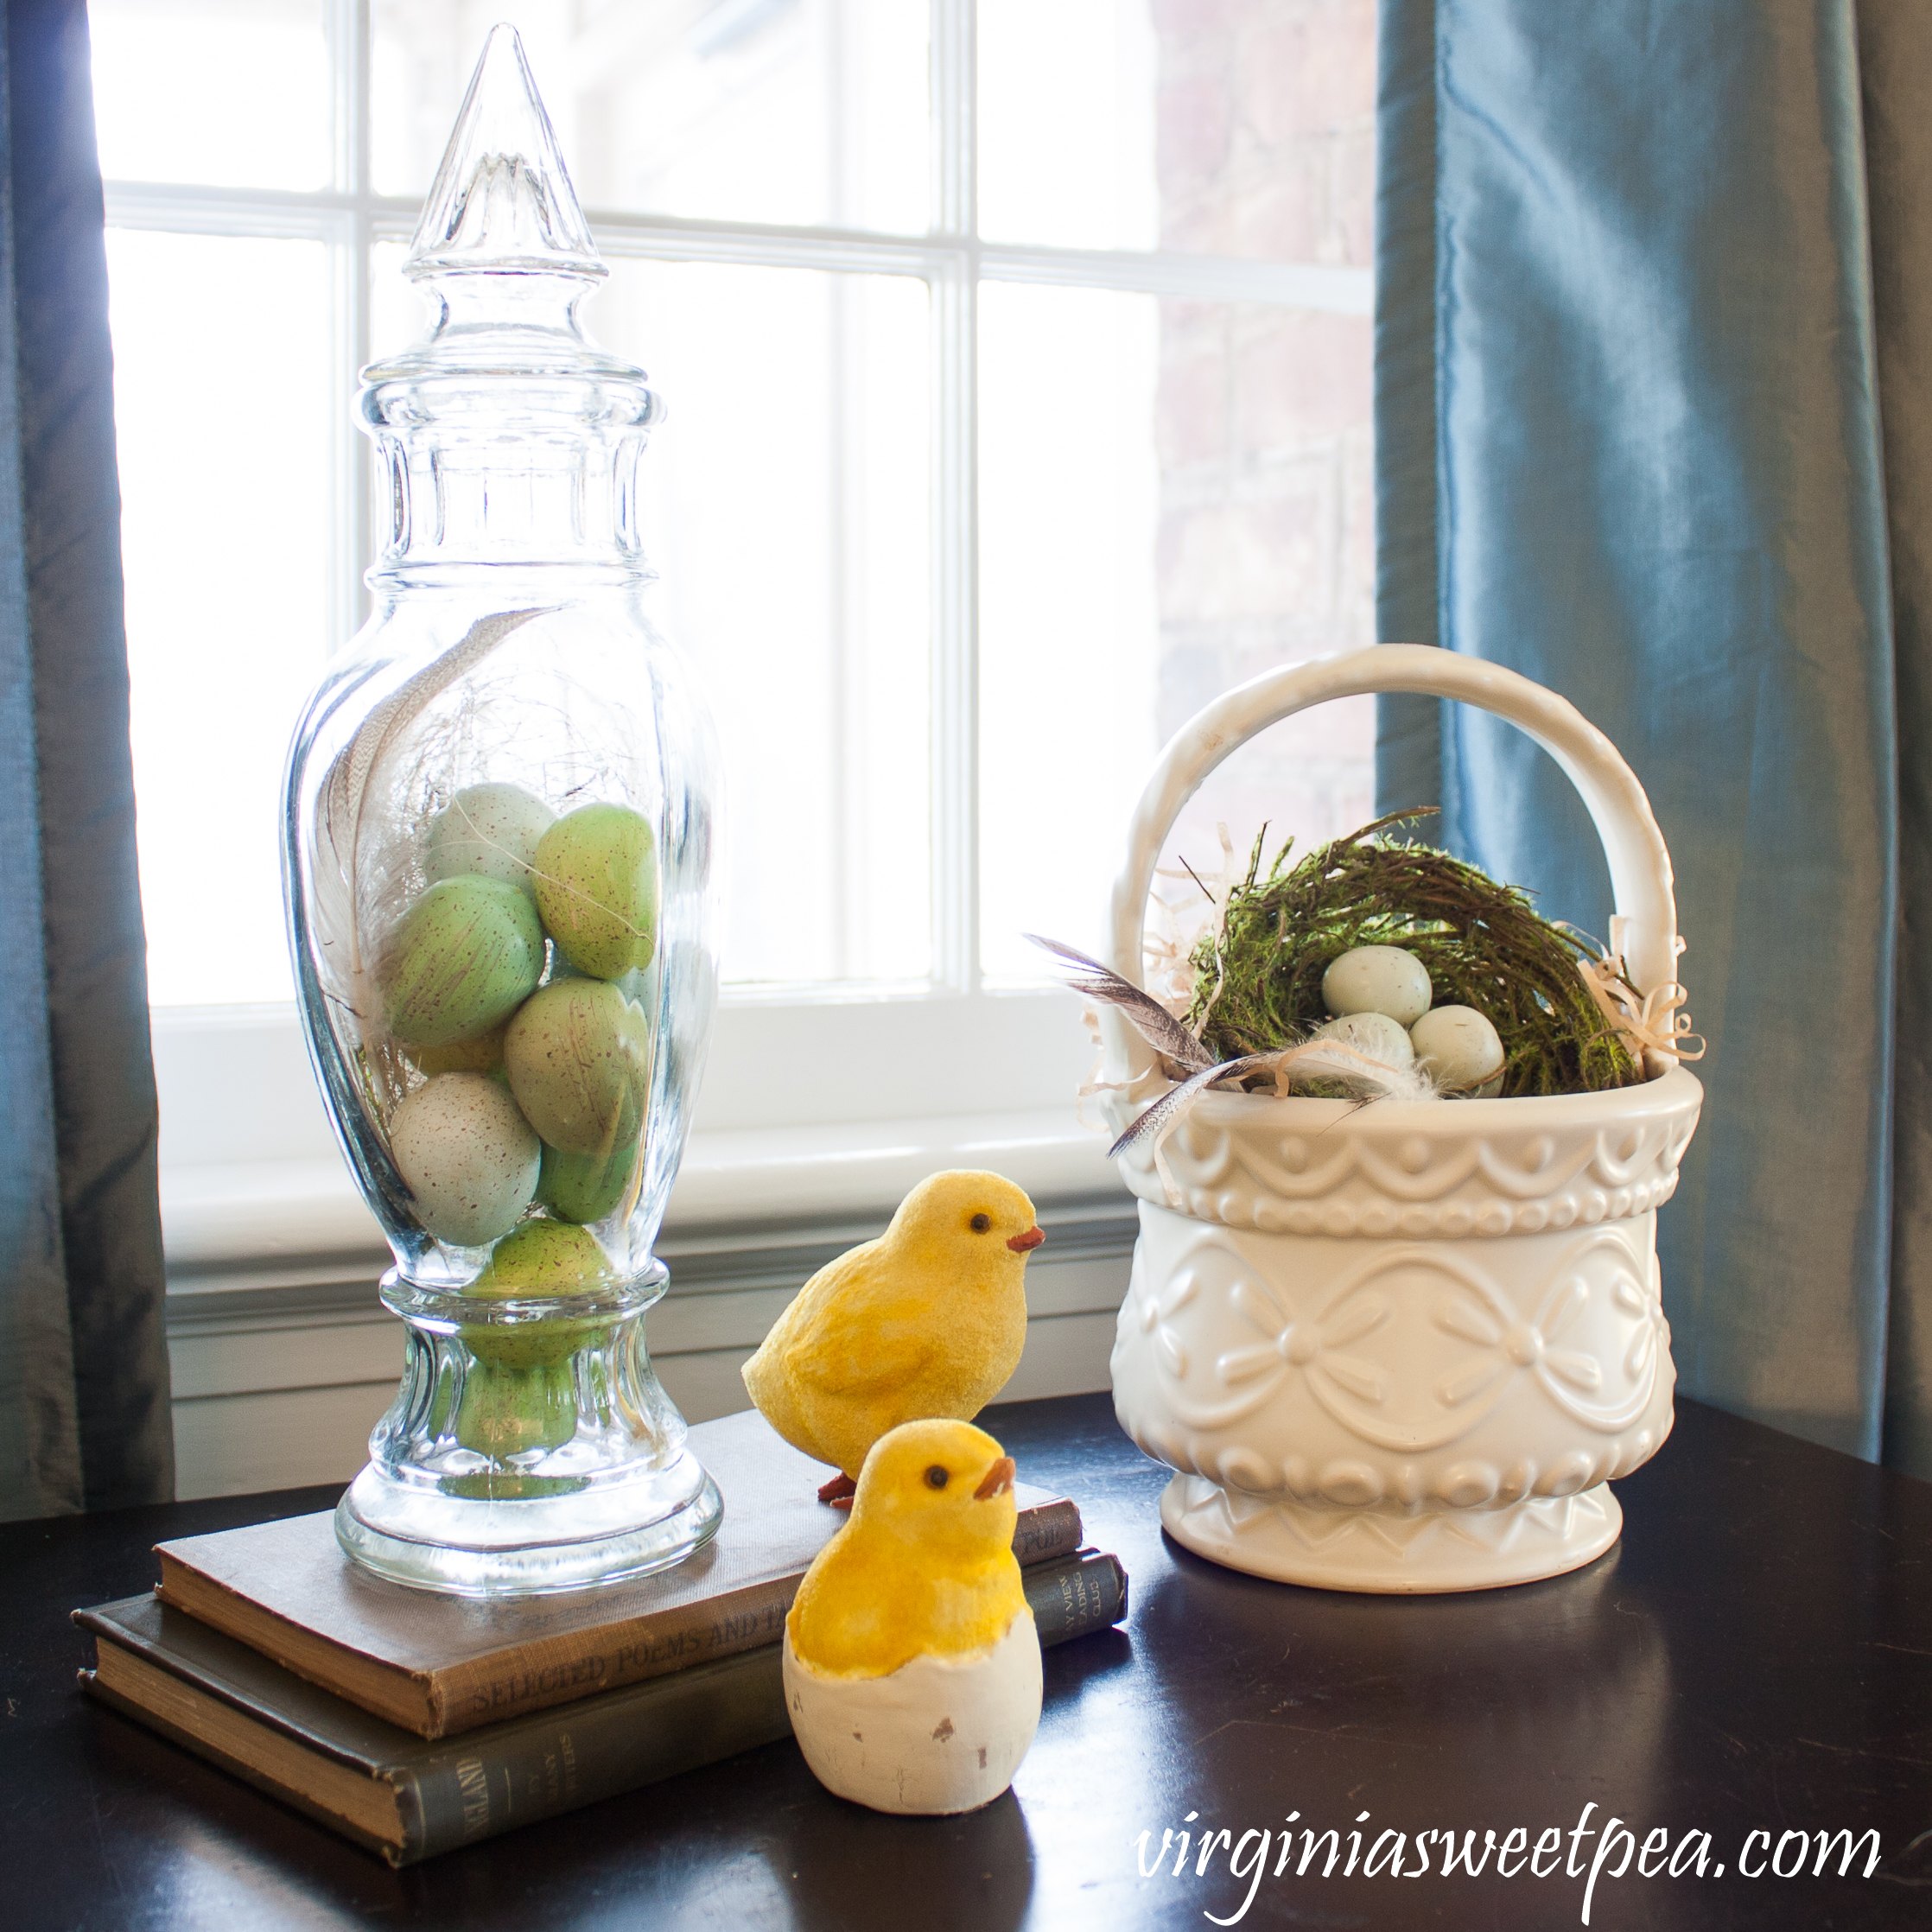 Easter vignette with eggs in a vintage glass candy holder, a nest in a Hull basket, chicks, and antique books #easterdecor #easterdecorations #vintagedecor #hull